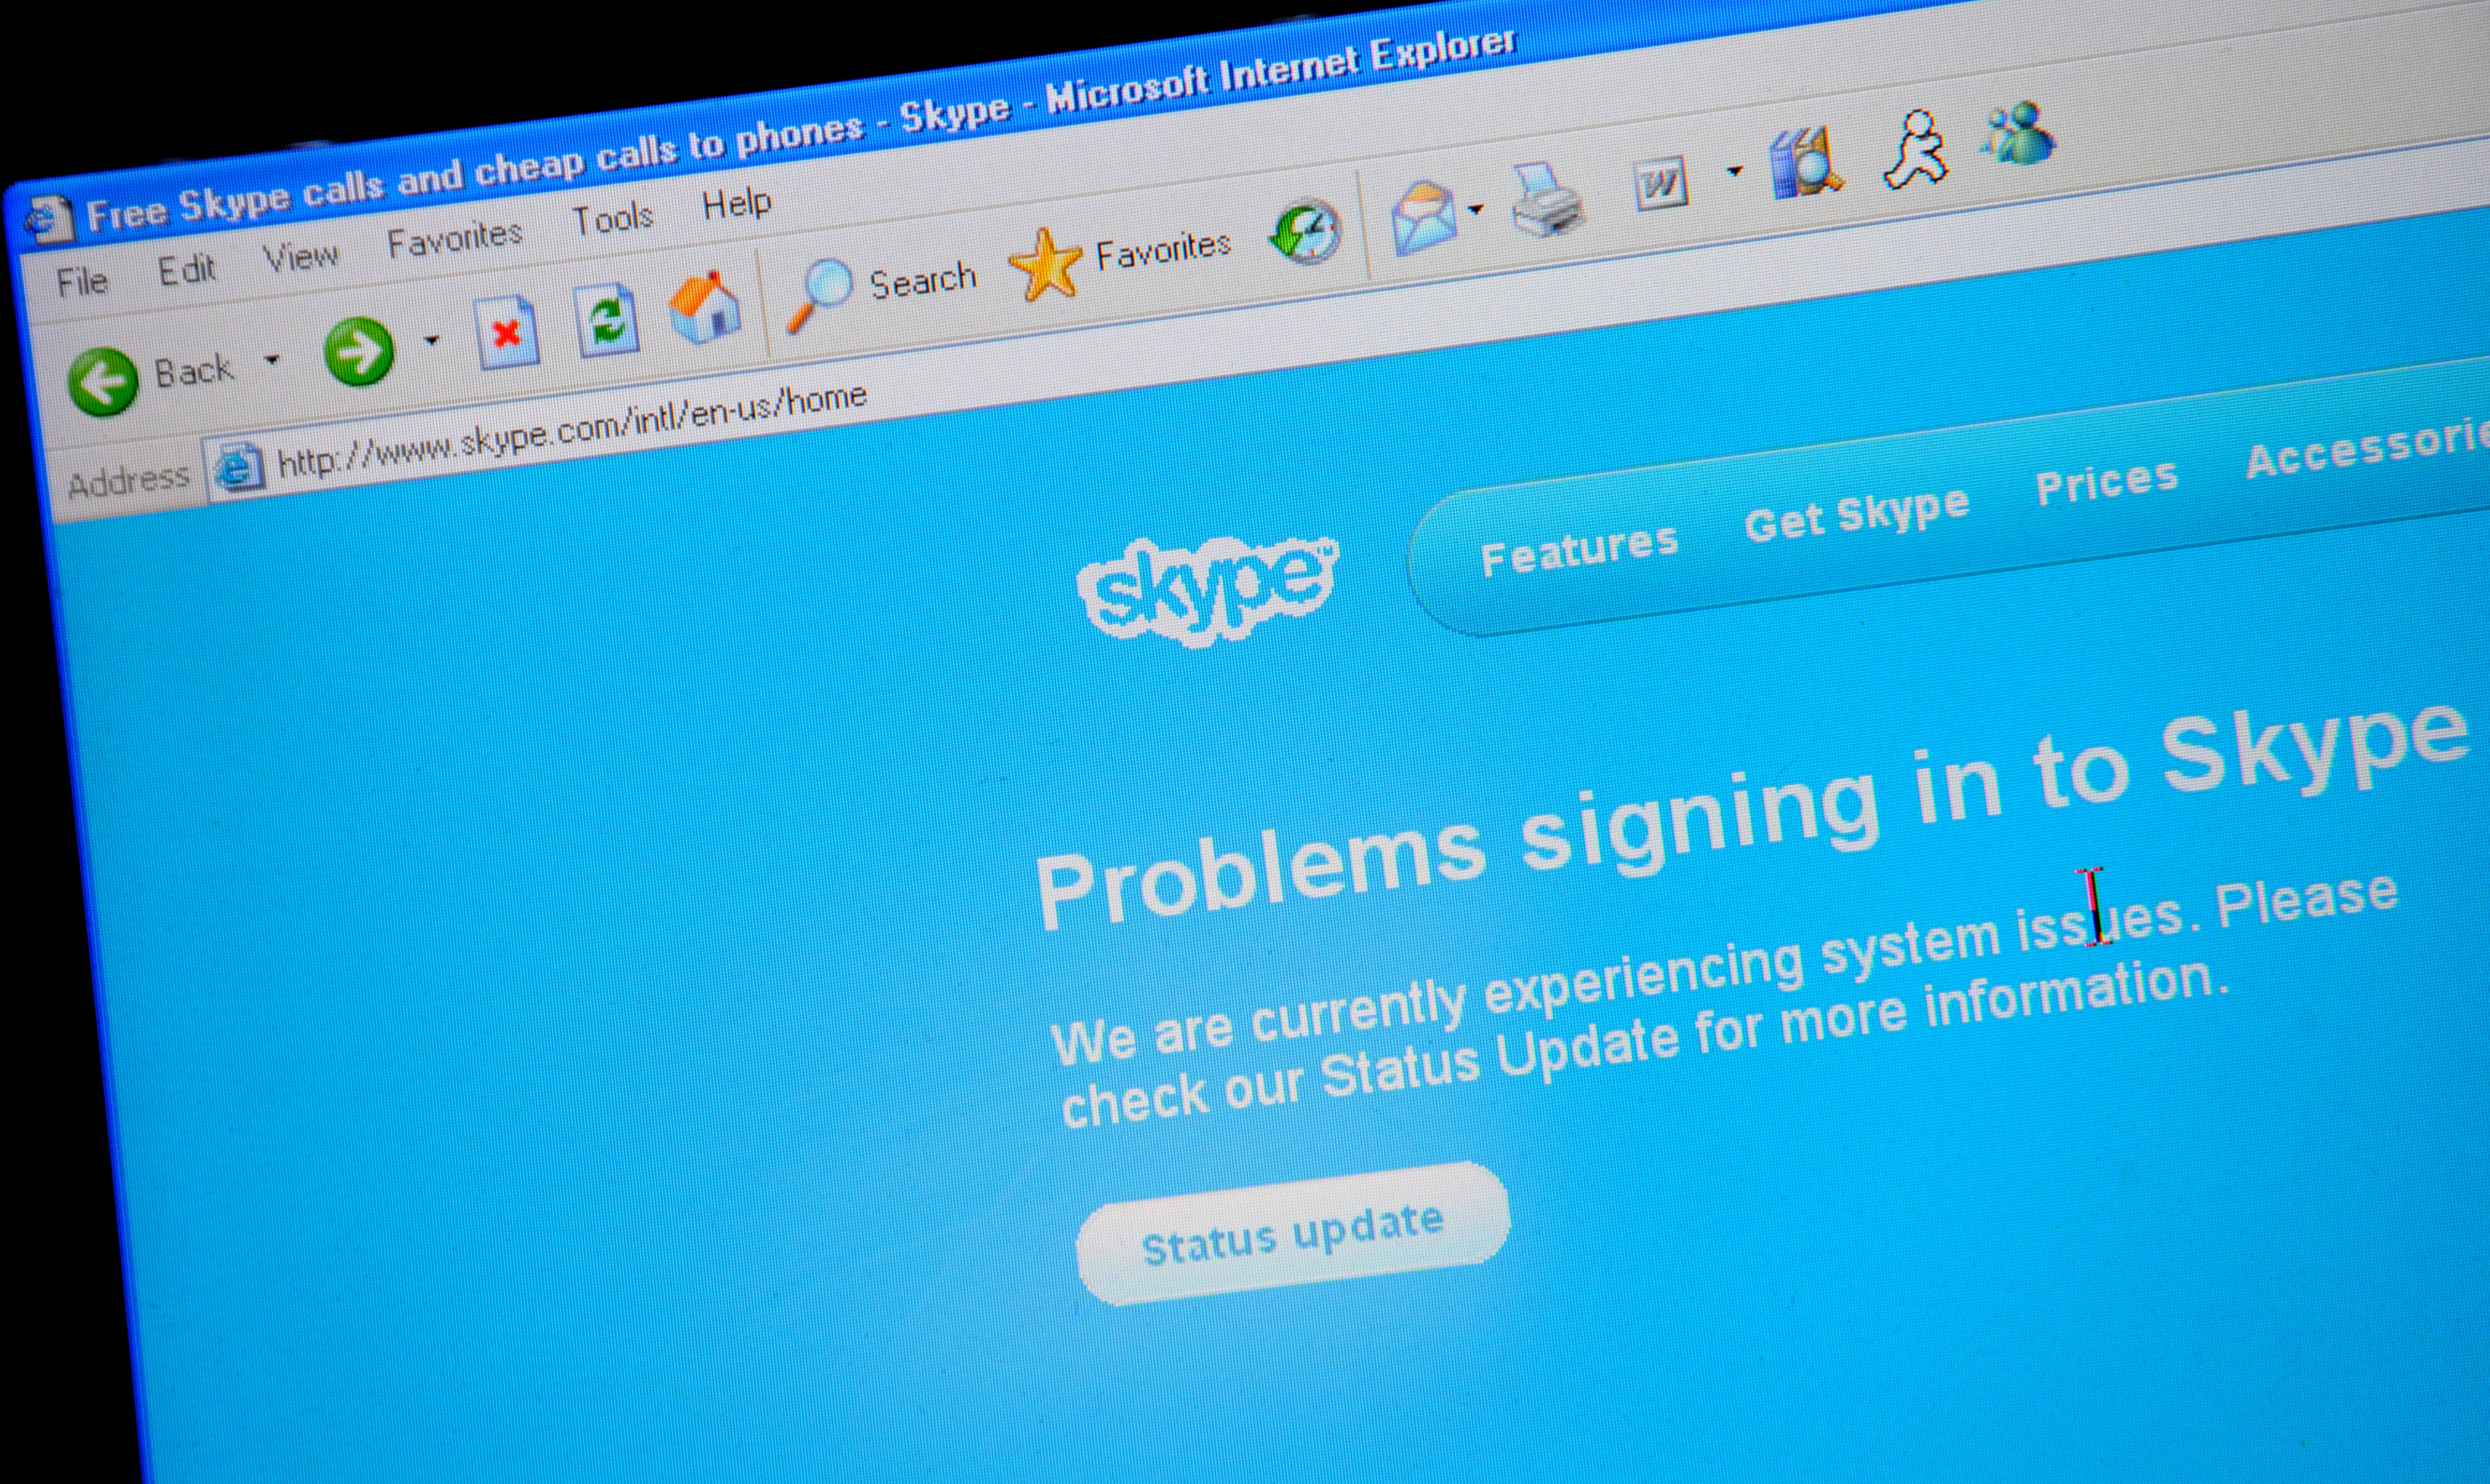 Skype's Blog and Social Profiles Hacked By Syrian Electronic Army